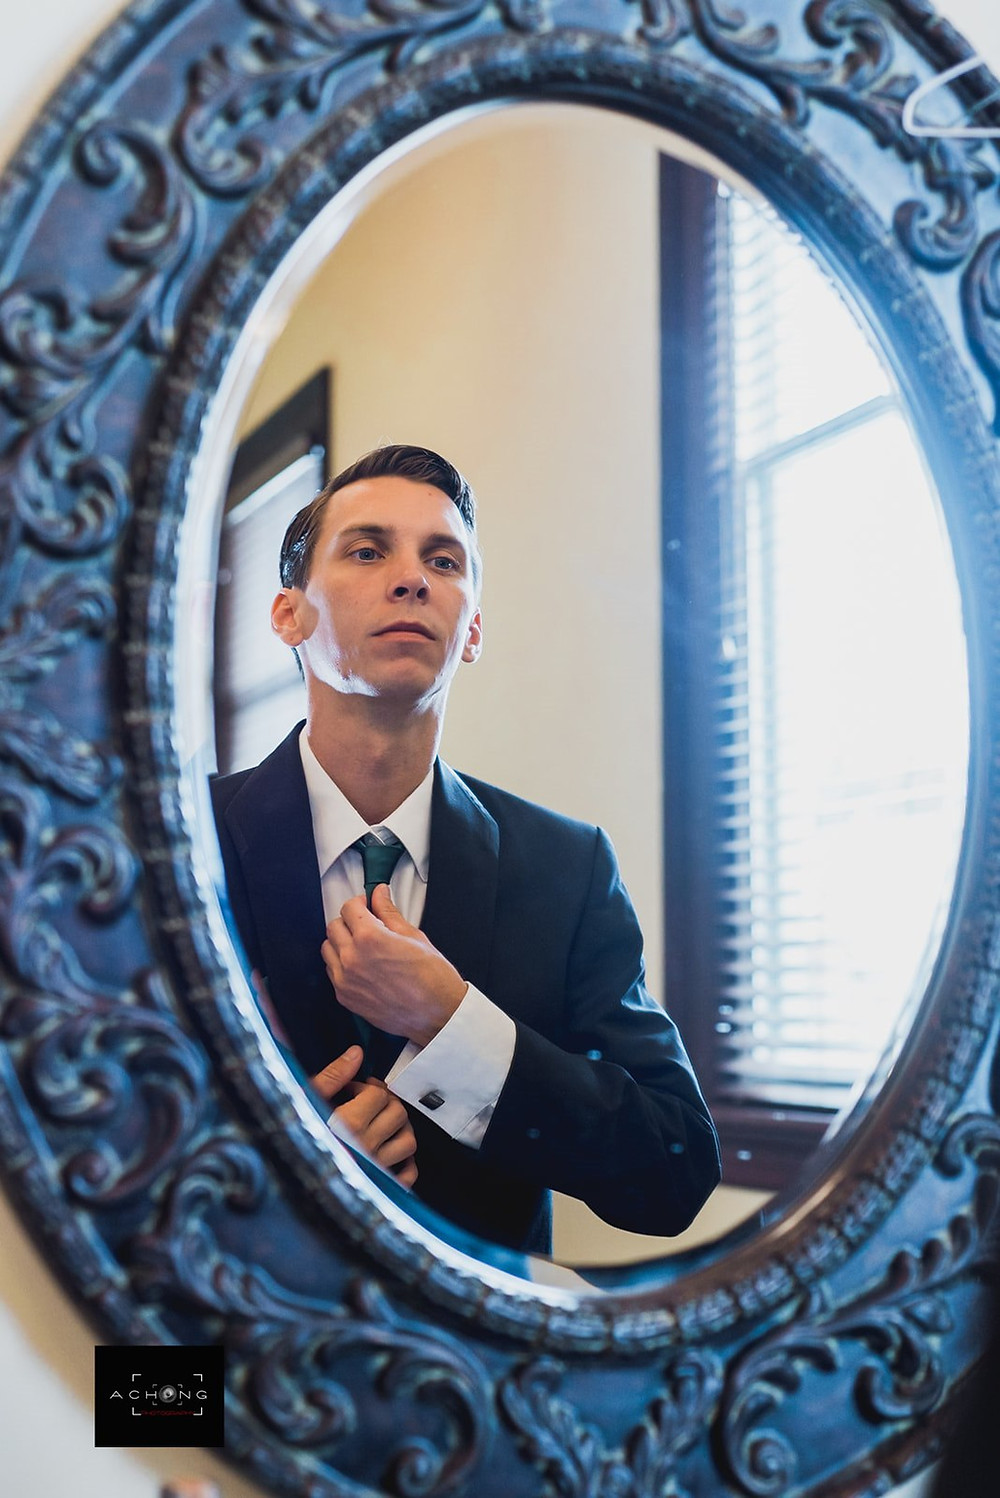 A groom gets ready for his wedding at The Feather Ballroom in Snohomish, a wedding venue near Seattle, WA. | My Snohomish Wedding | Snohomish Wedding Planning